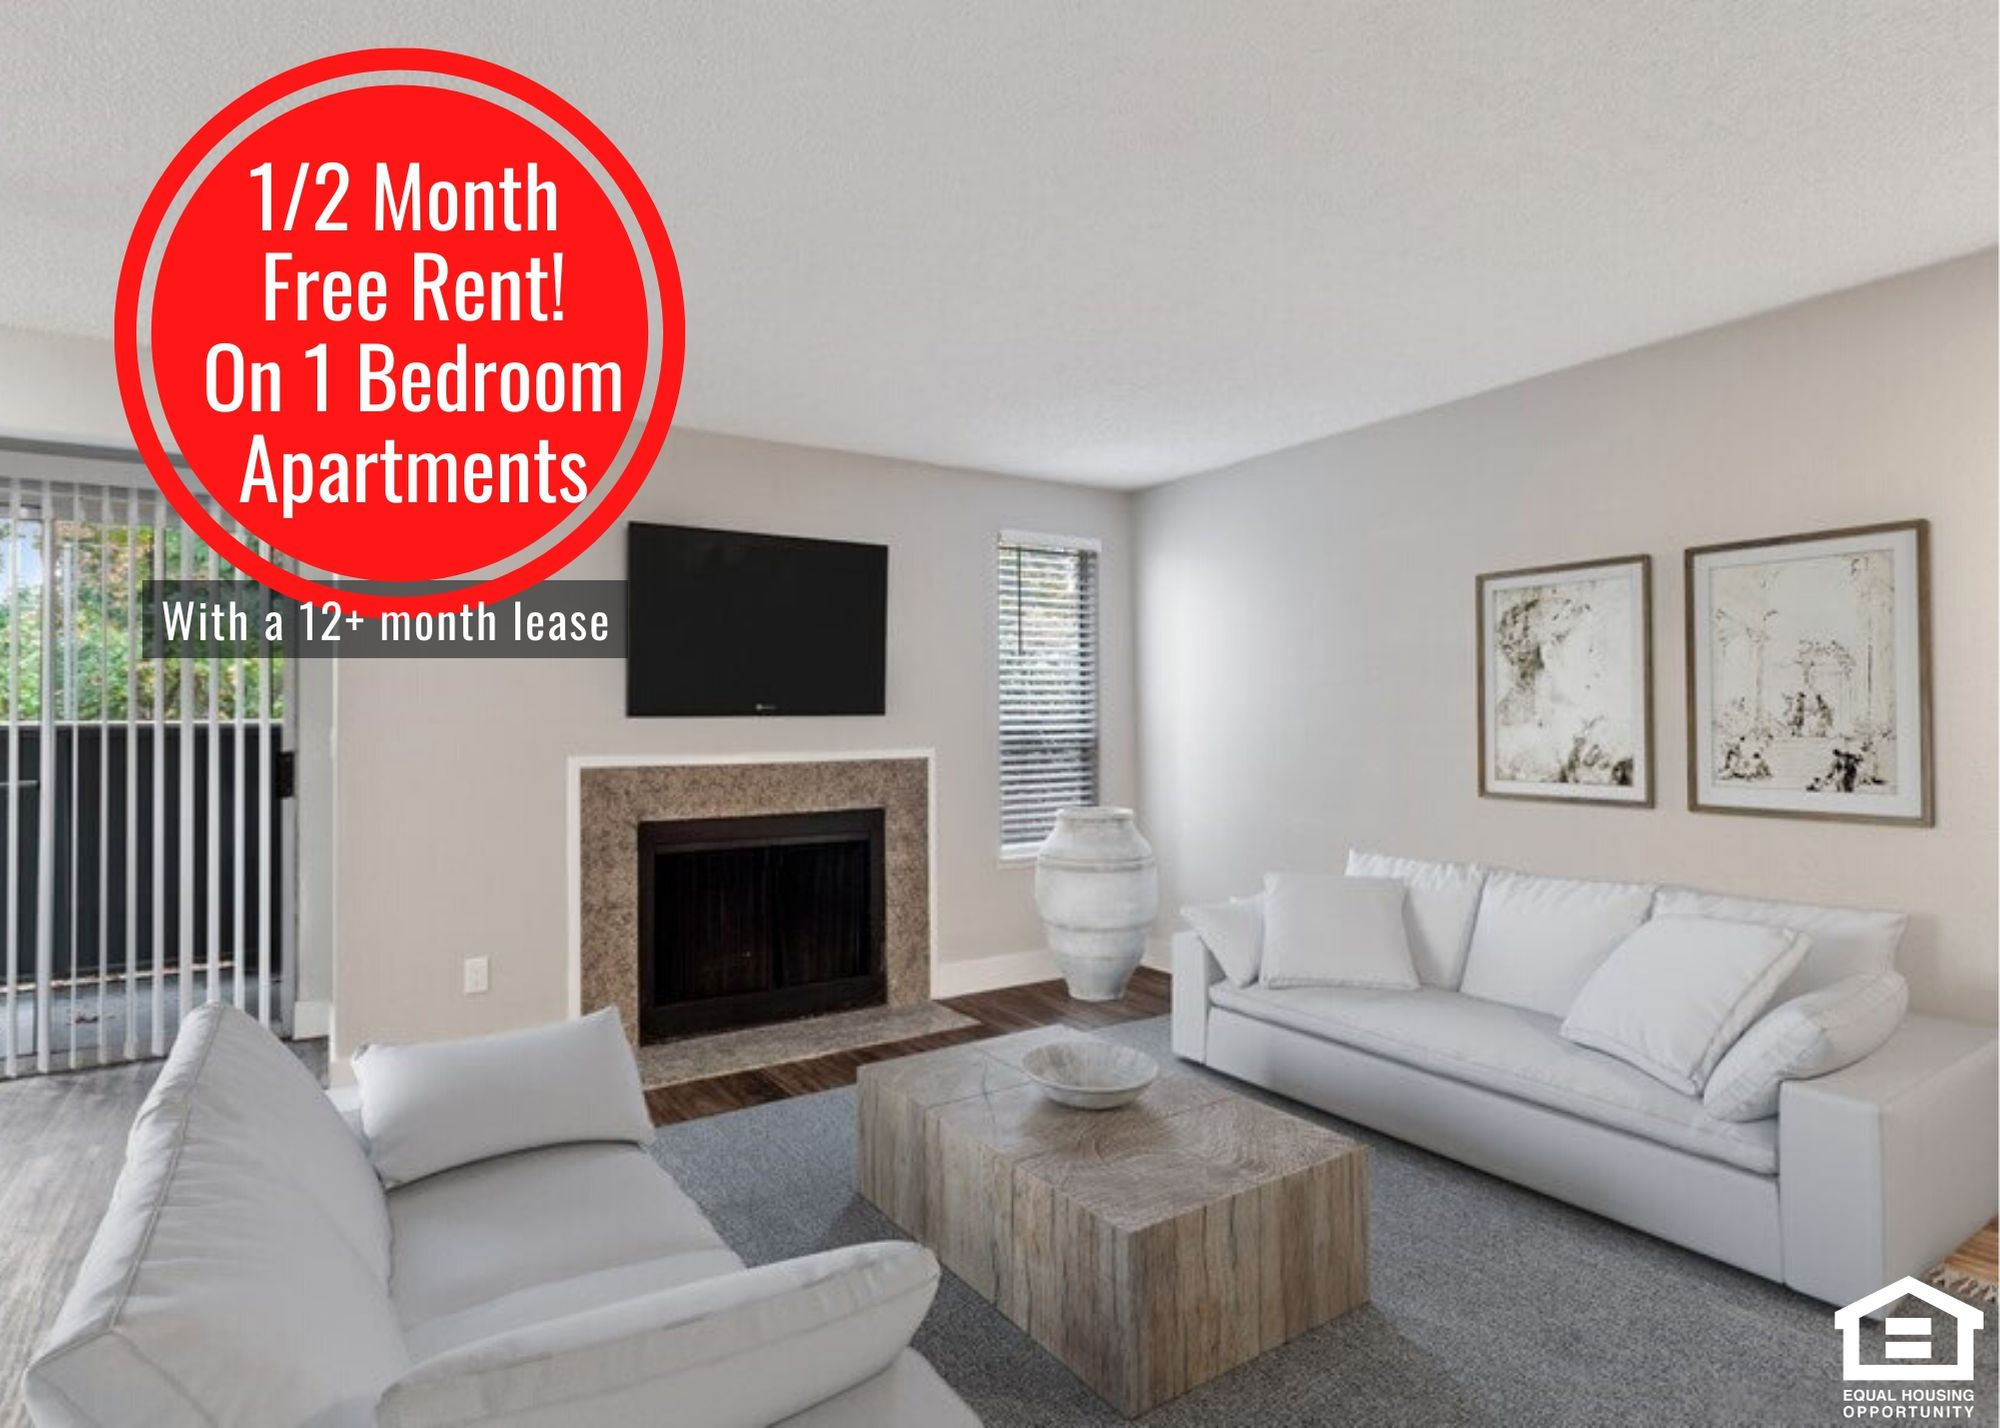 1/2 month off first month's rent on 1 bedroom apartments, with a 12+ month lease.